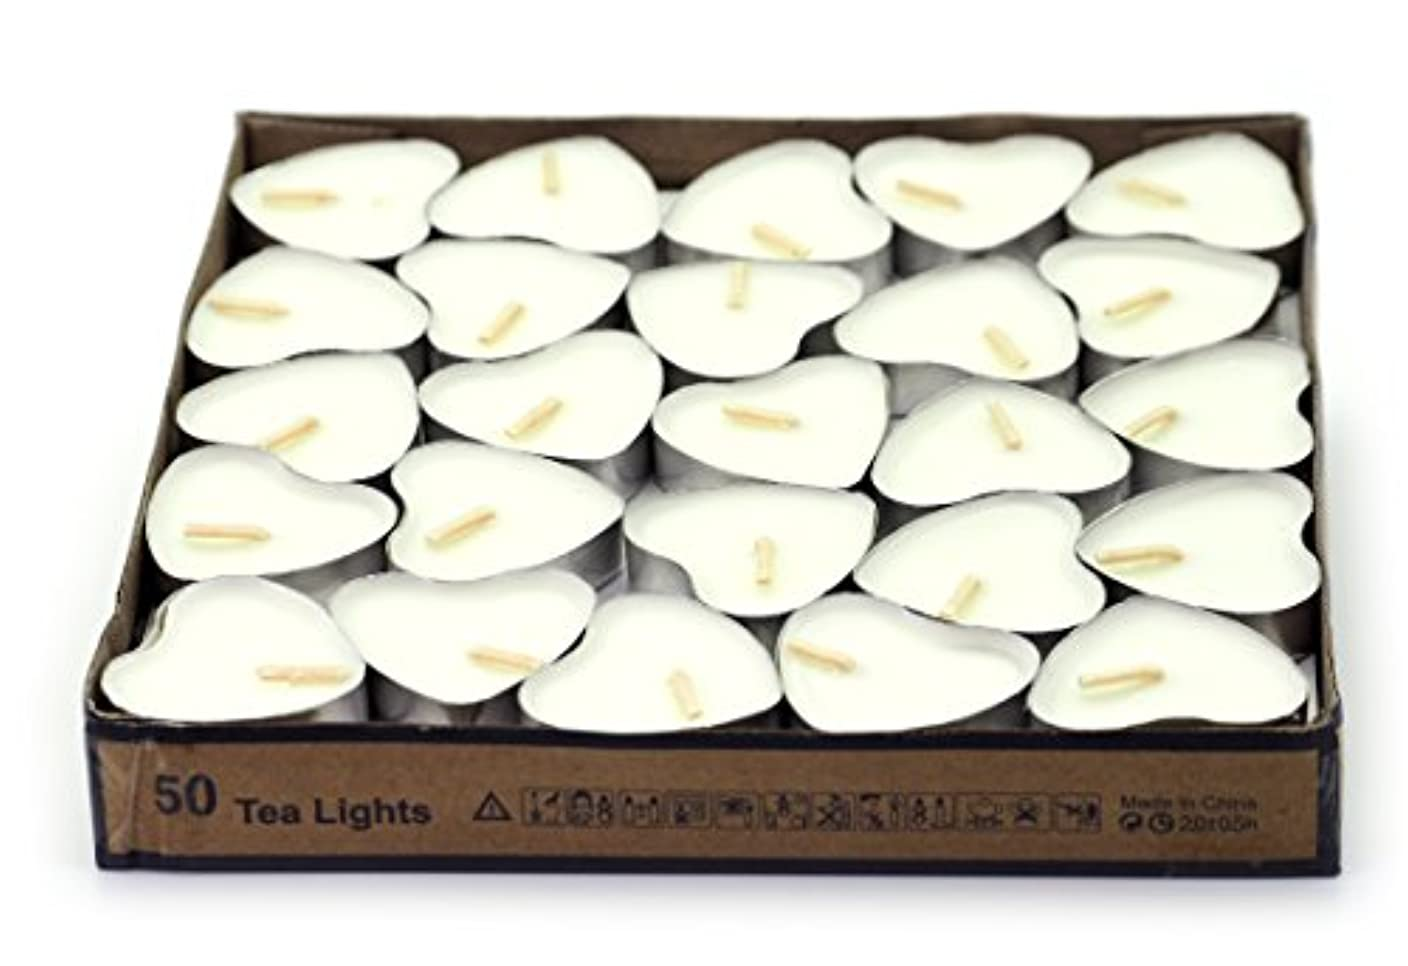 小人取り出す送信する(White(jasmine)) - Creationtop Scented Candles Tea Lights Mini Hearts Home Decor Aroma Candles Set of 50 pcs mini...